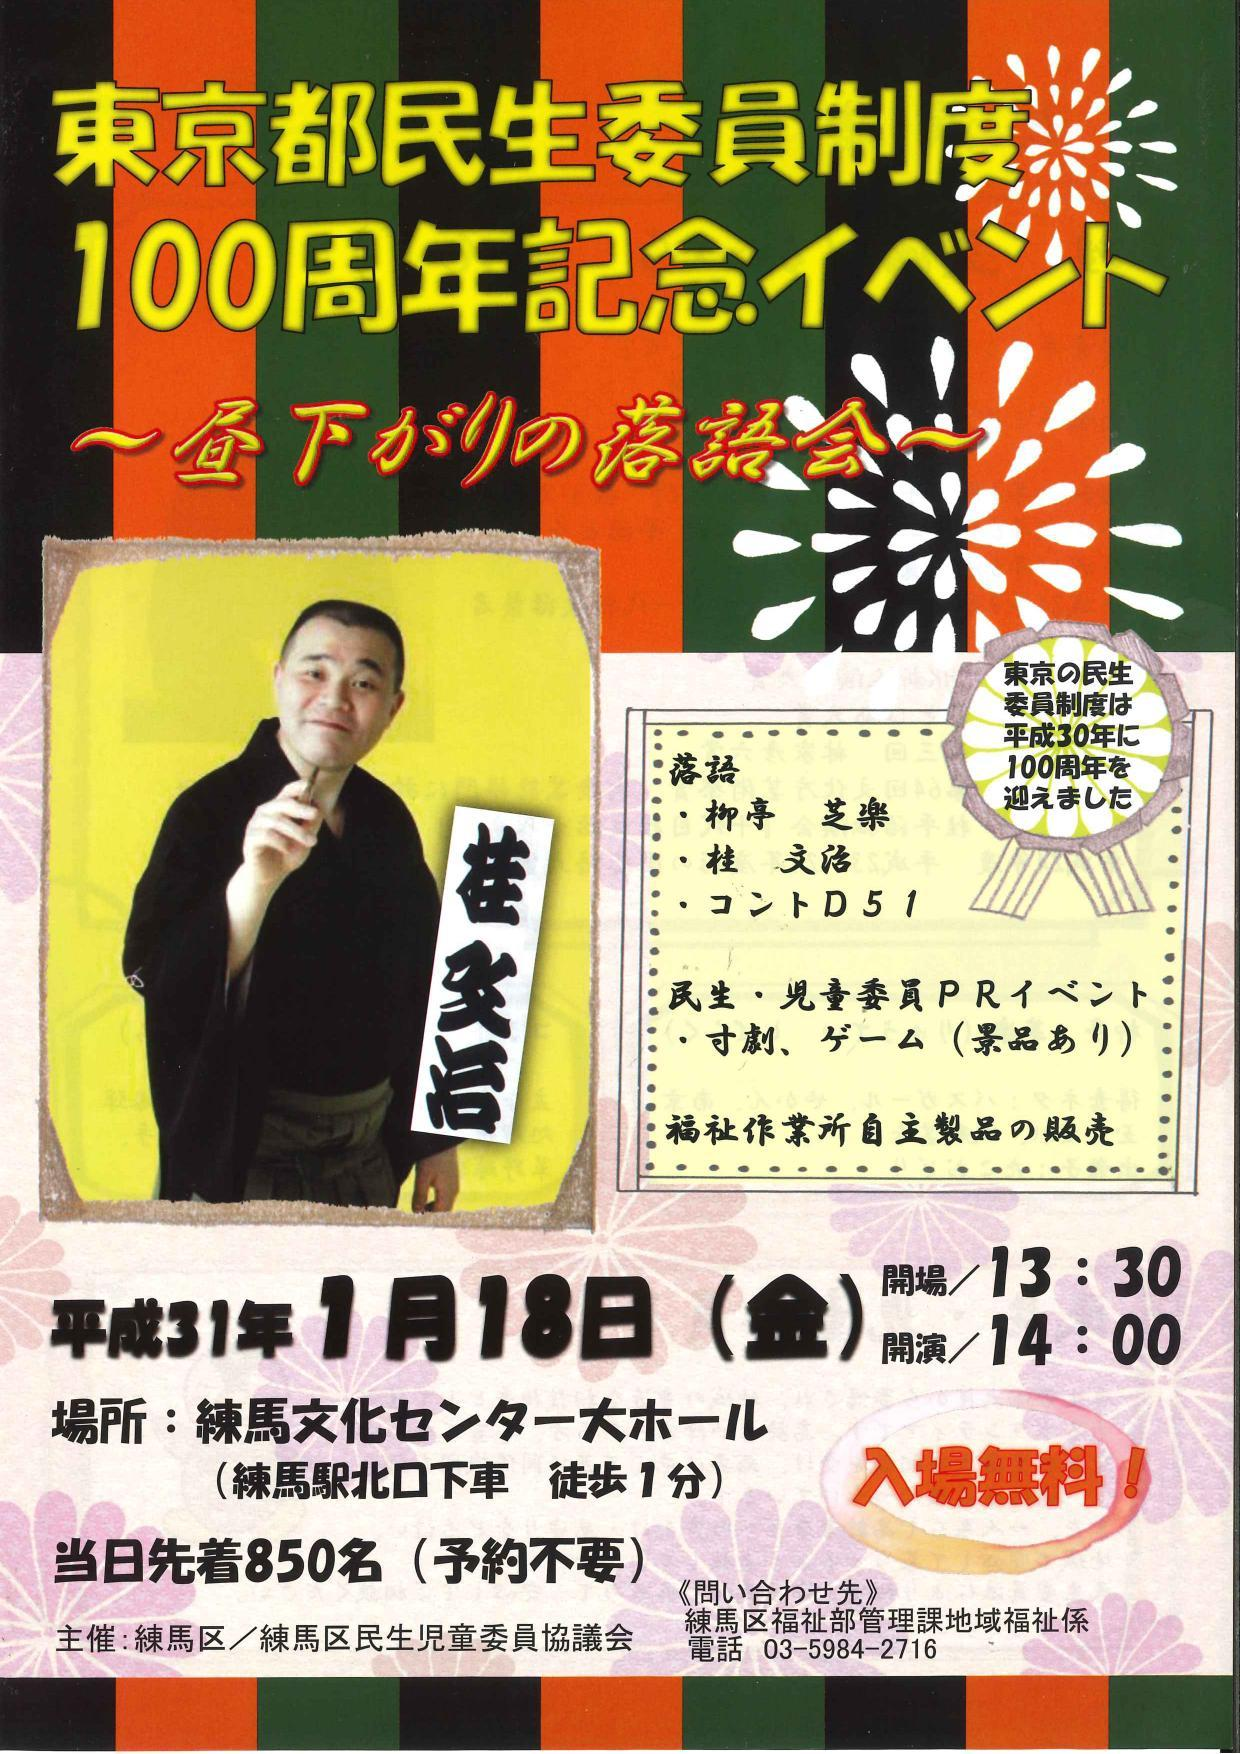 Rakugo society ... of event - early afternoon of the 100th anniversary of Tokyo local welfare officer system